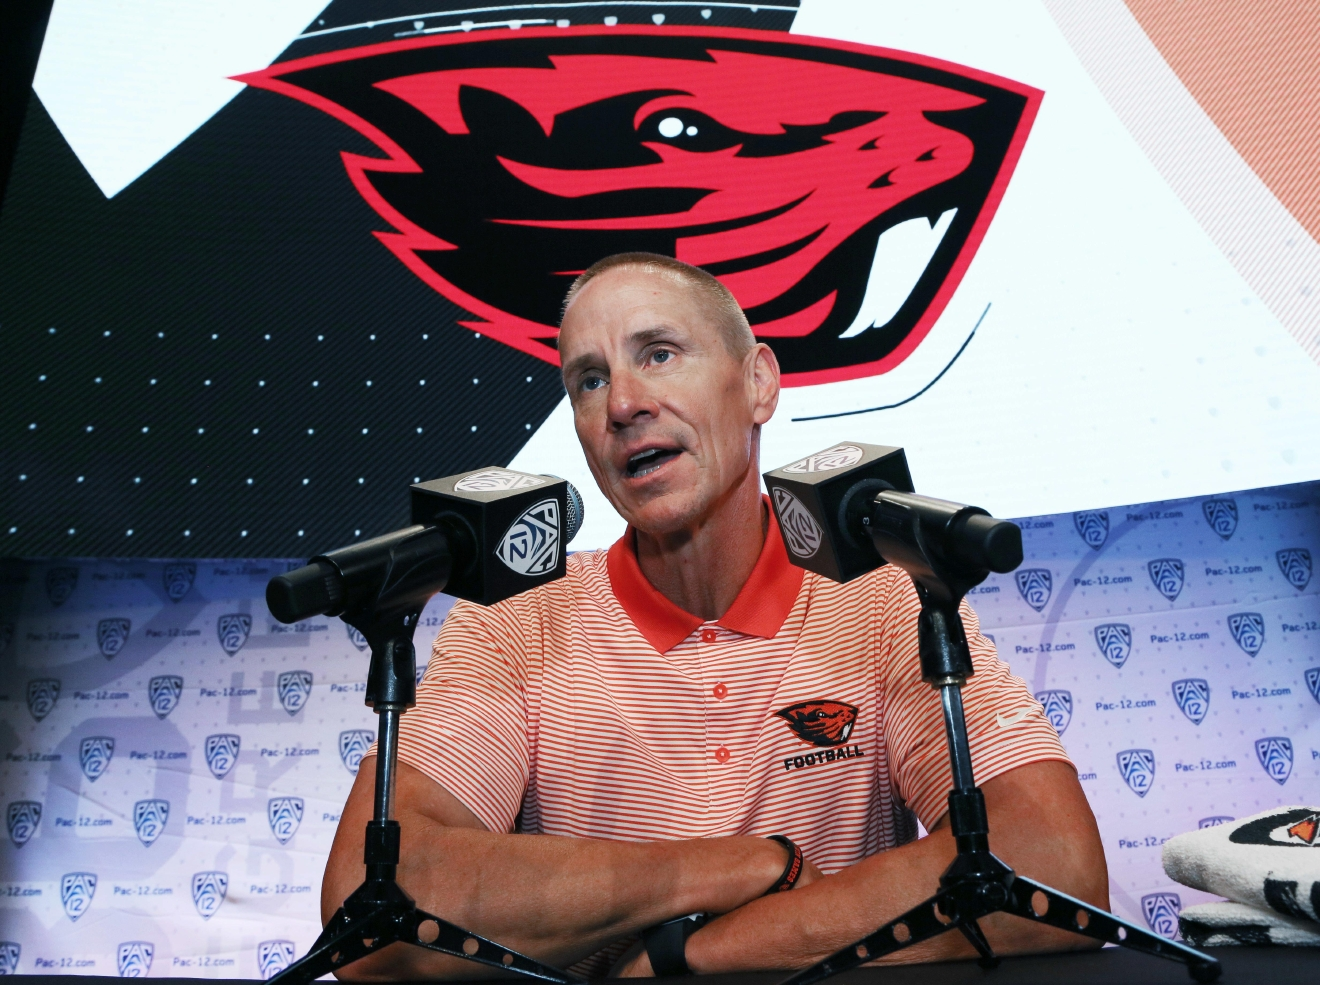 Oregon State head coach Gary Andersen speaks at the Pac-12 NCAA college football media day in Los Angeles Friday, July 15, 2016. (AP Photo/Reed Saxon)